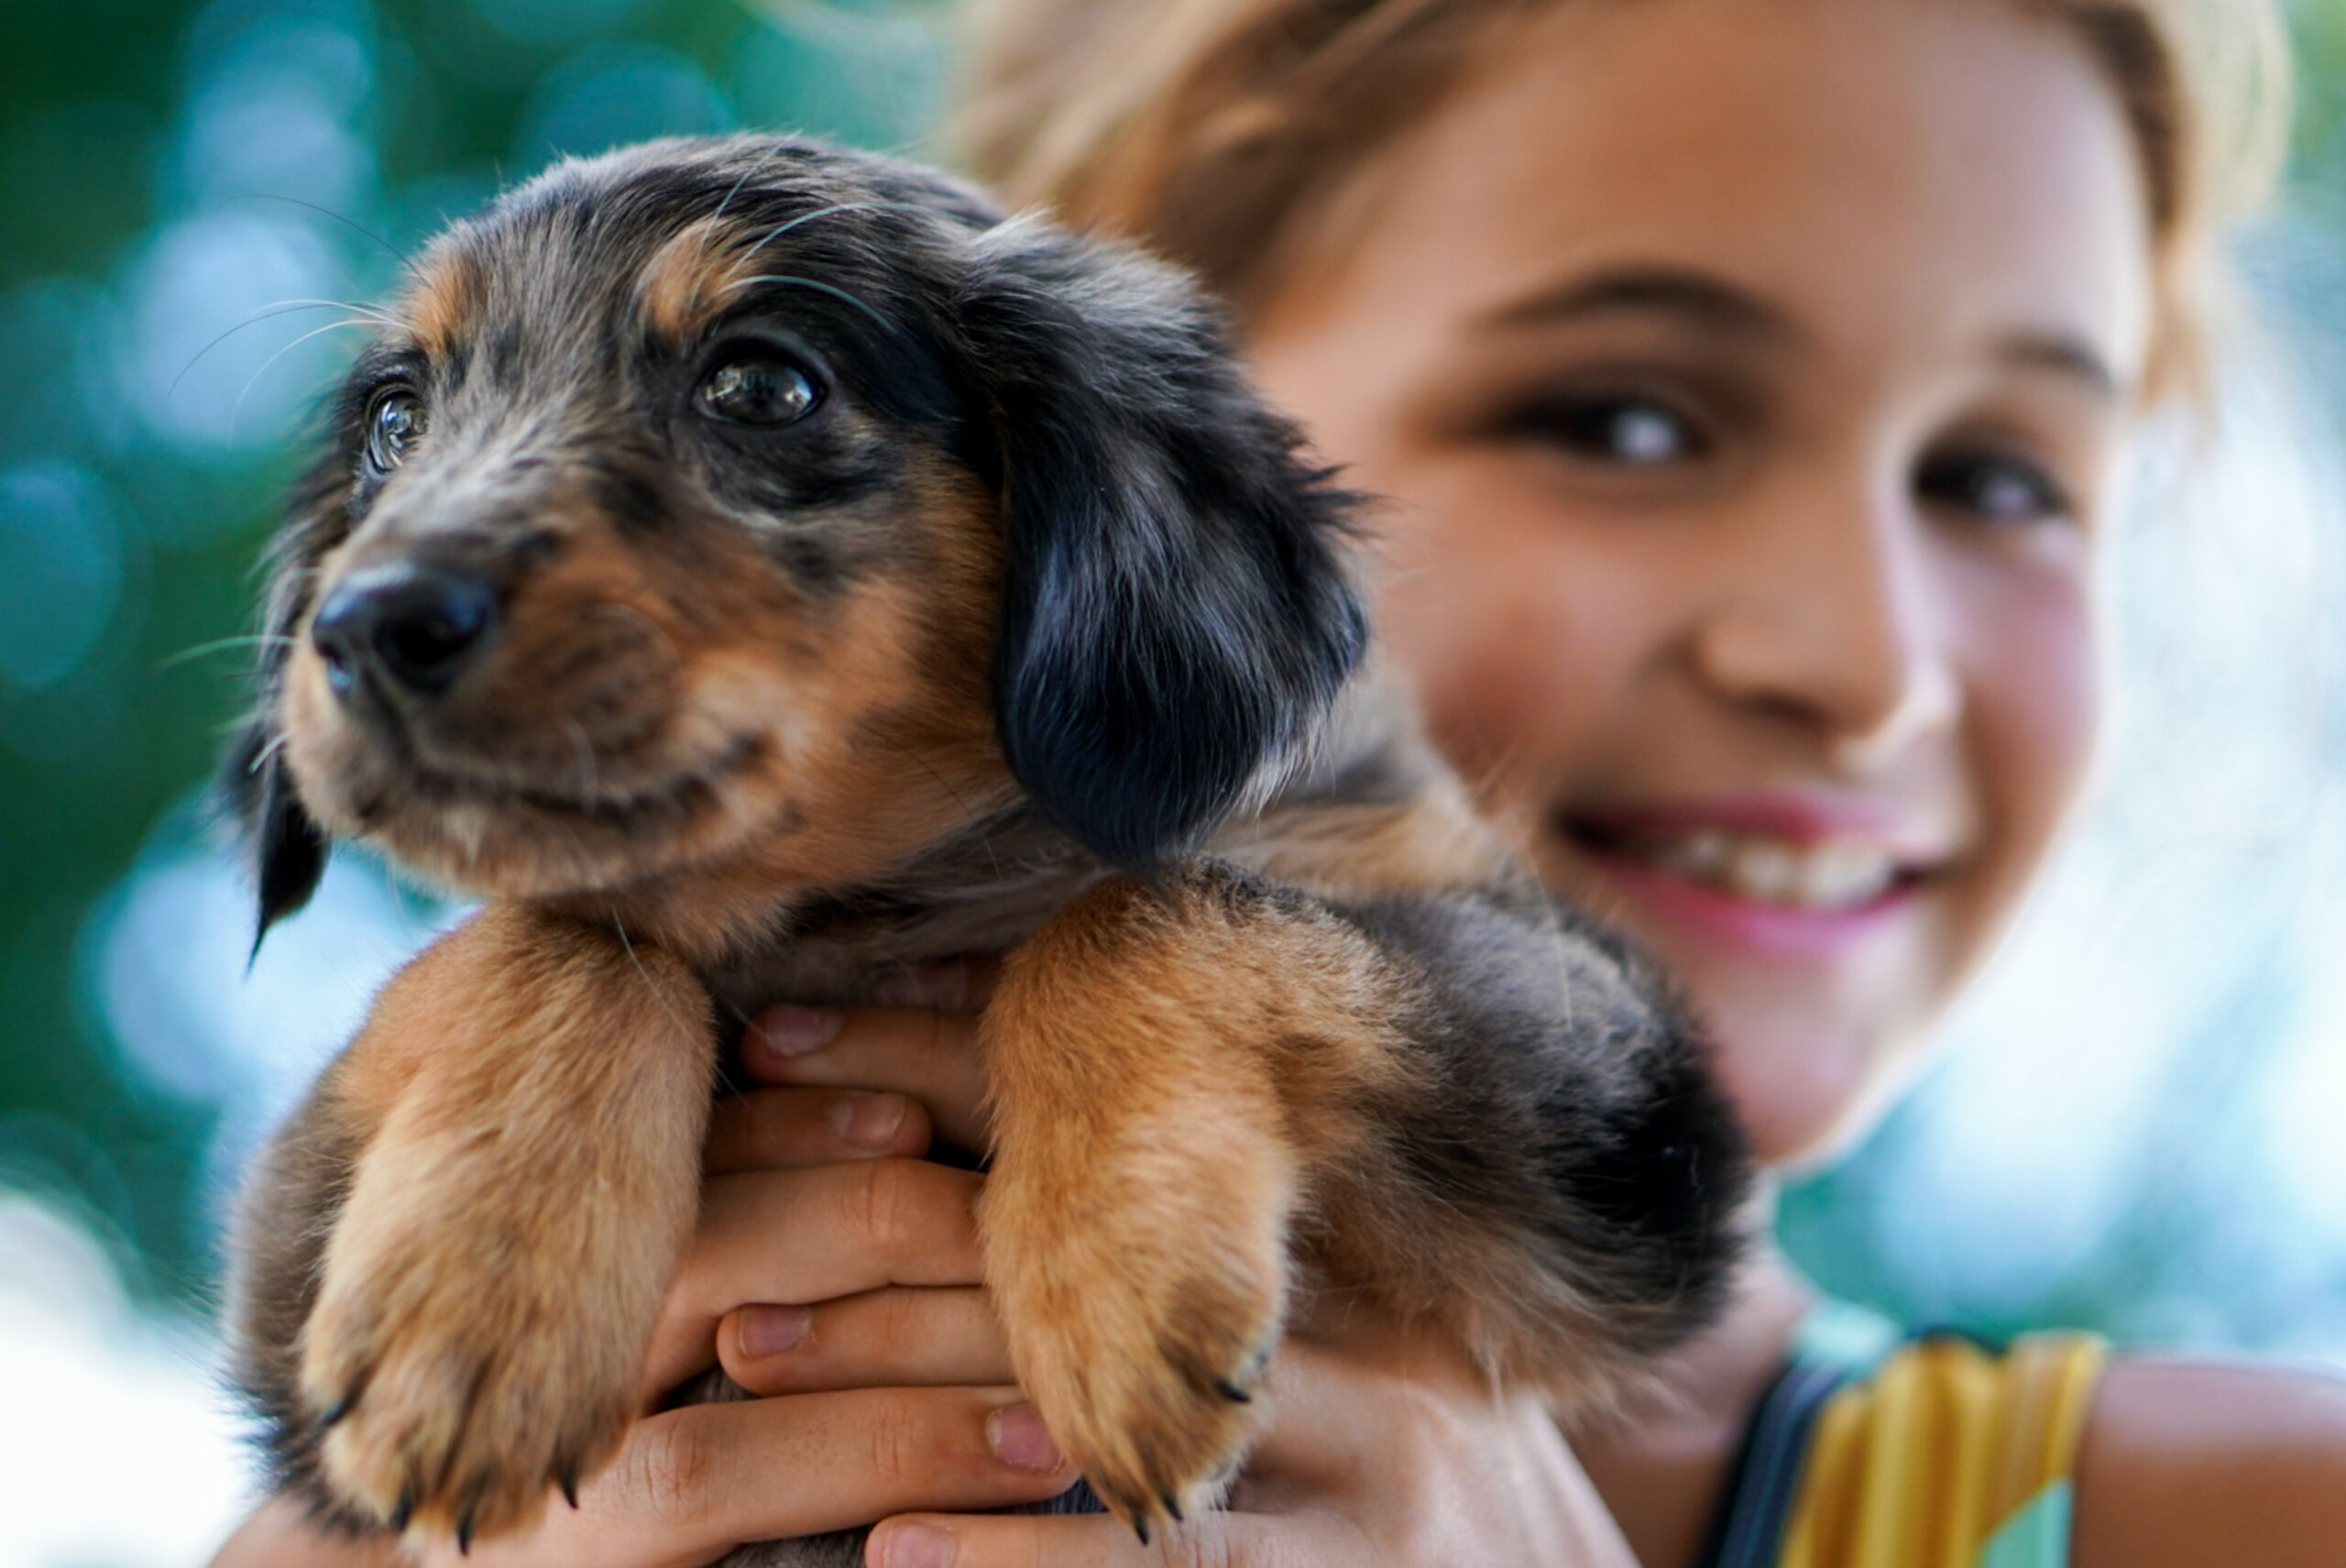 A Girl Holding a Black & Brown Puppy